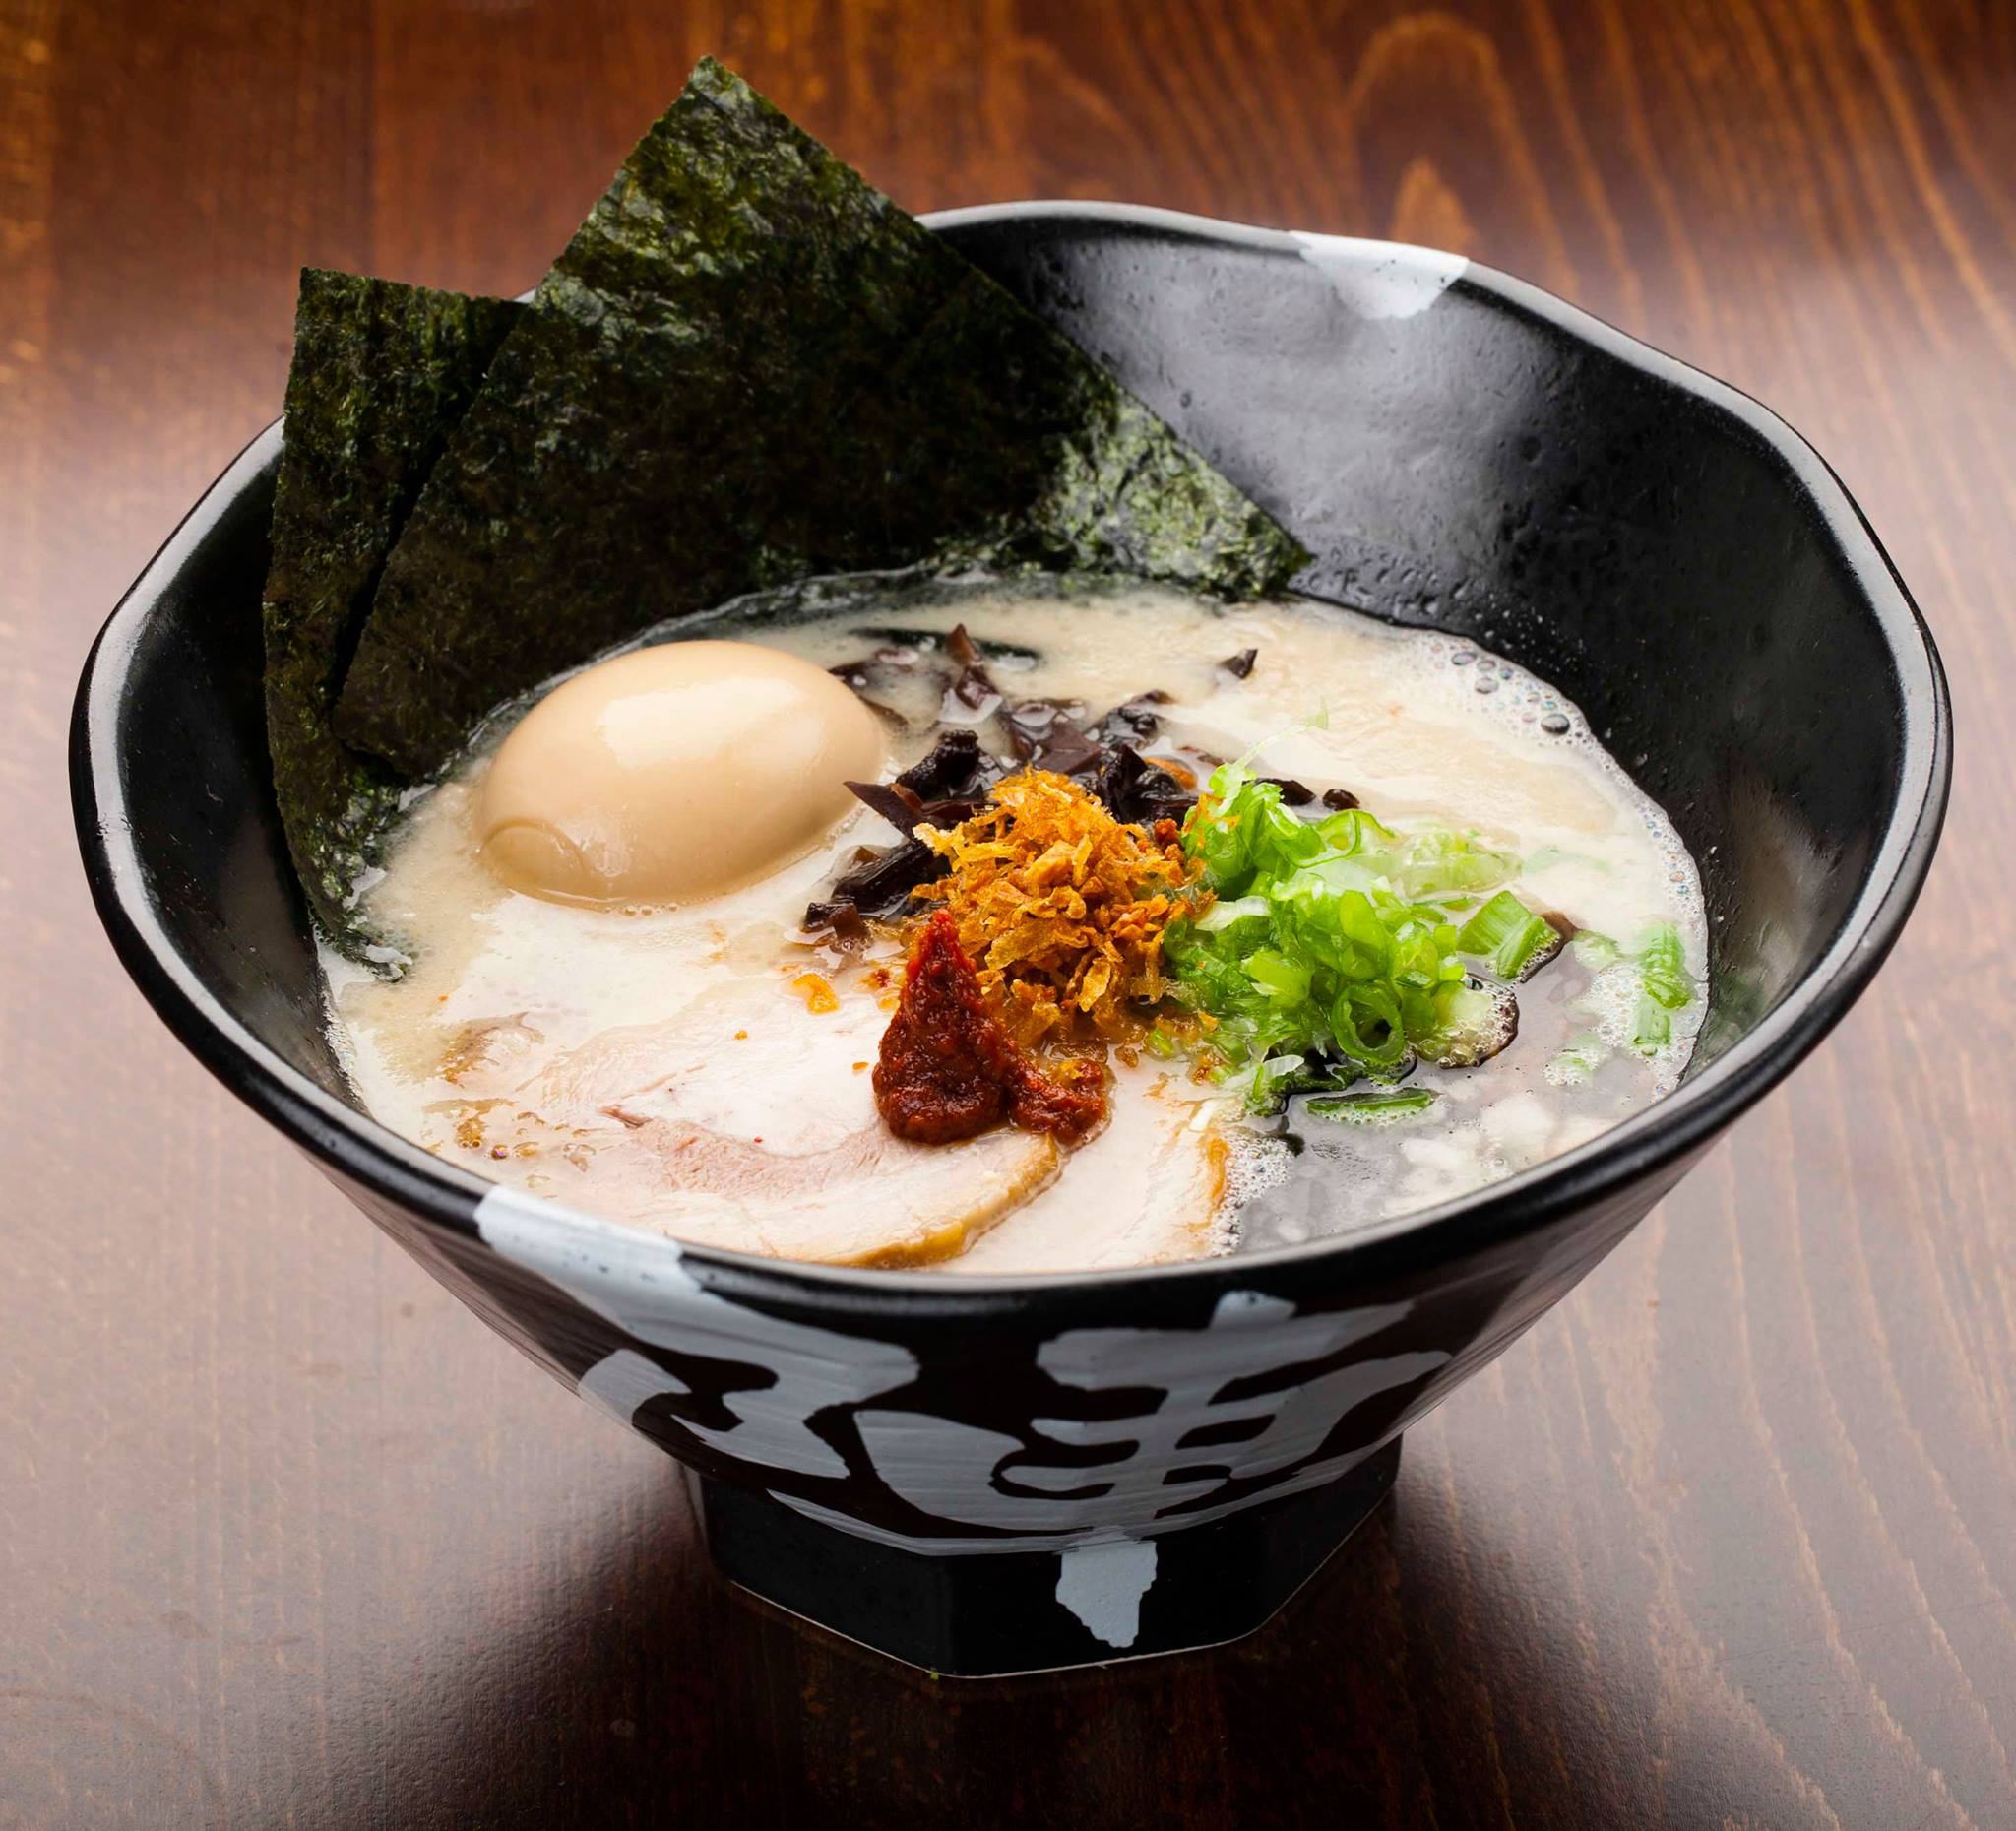 Popular Japanese Ramen Chain Brings Bowls of Aged Noodles to East Bay